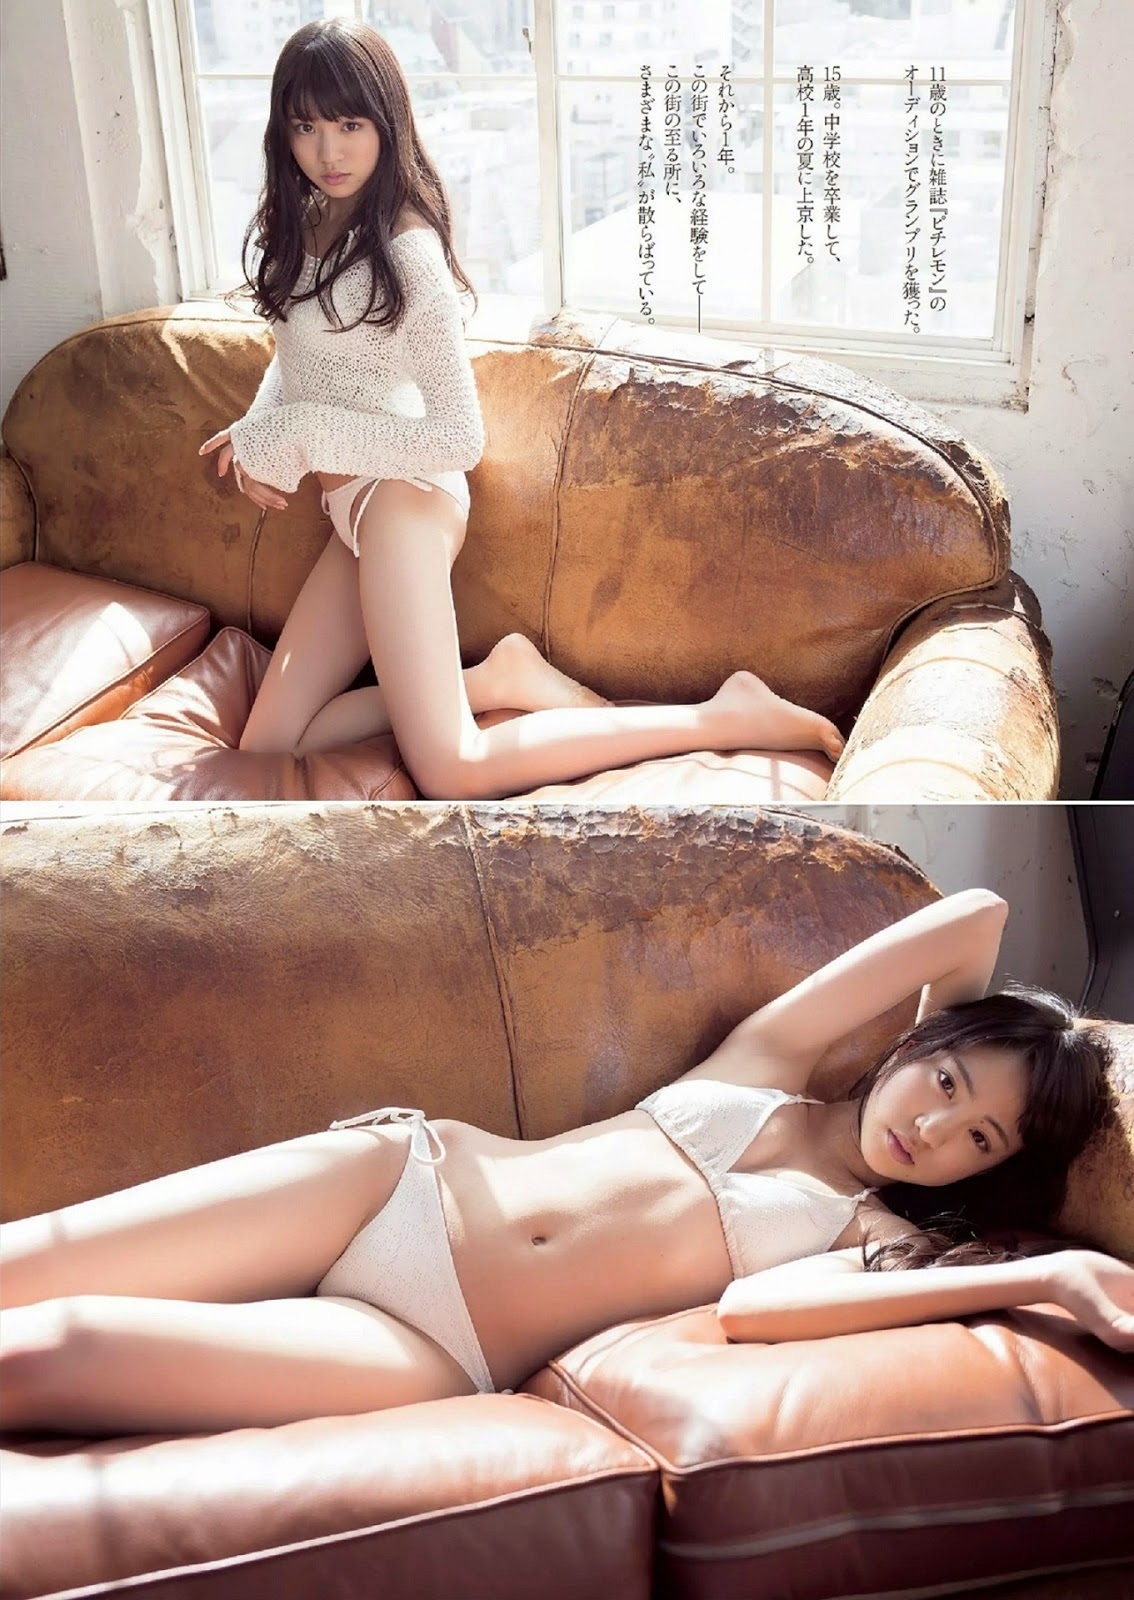 Shida Yuumi 志田友美 Weekly Playboy June 2014 Photos 3